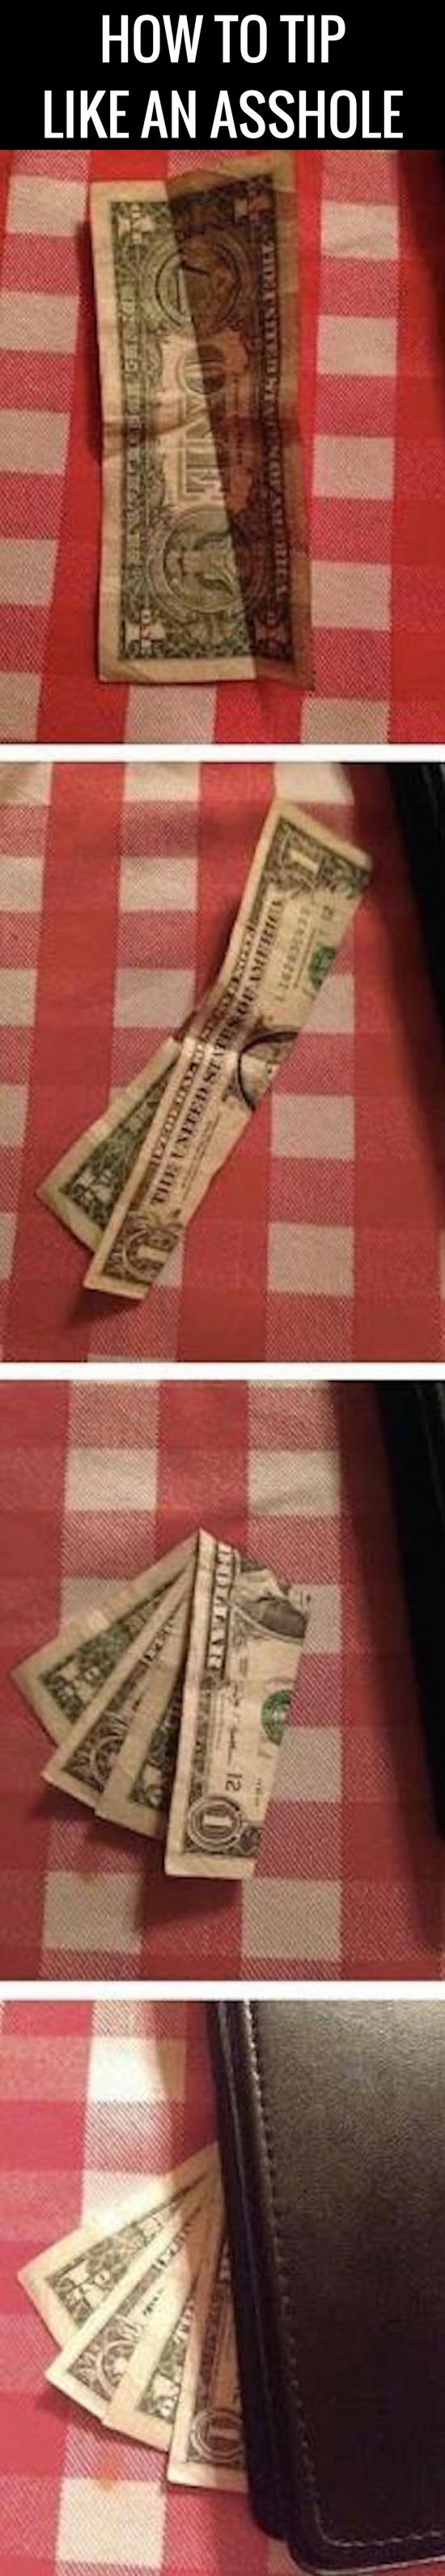 FUNNY PICTURE of how to tip like an asshole